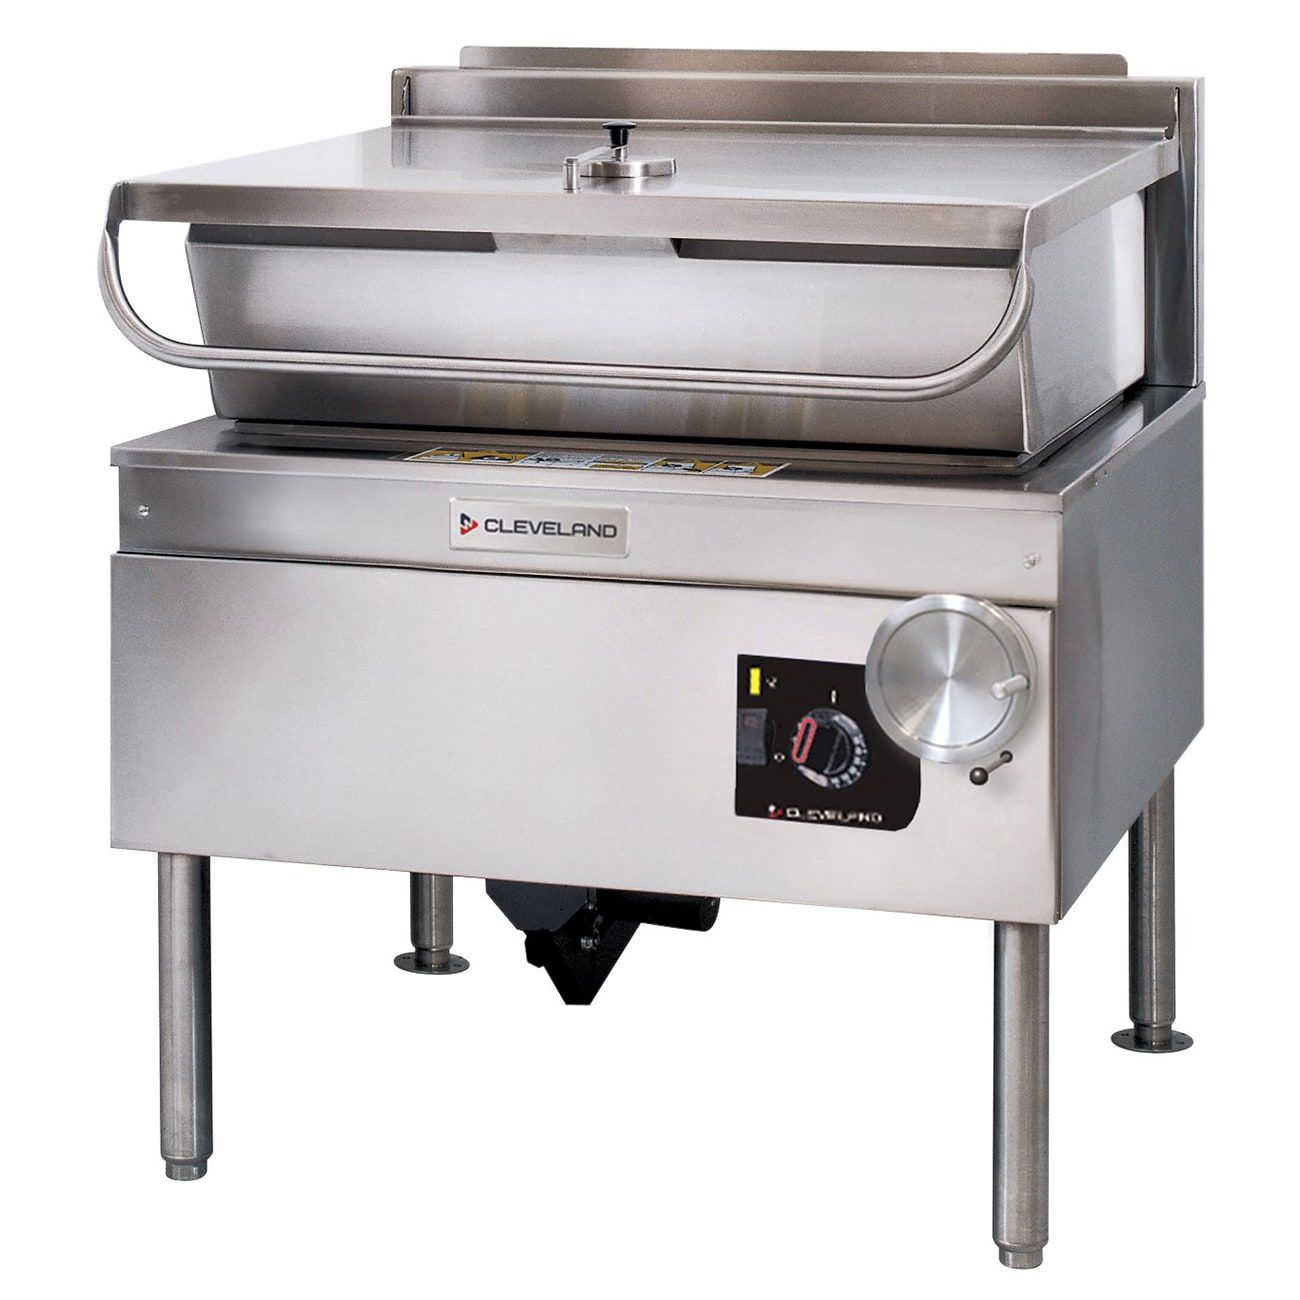 Cleveland SGL40TR 40-gal Tilting Skillet w/ Modular Open Base & Spring Assisted Cover Stainless NG